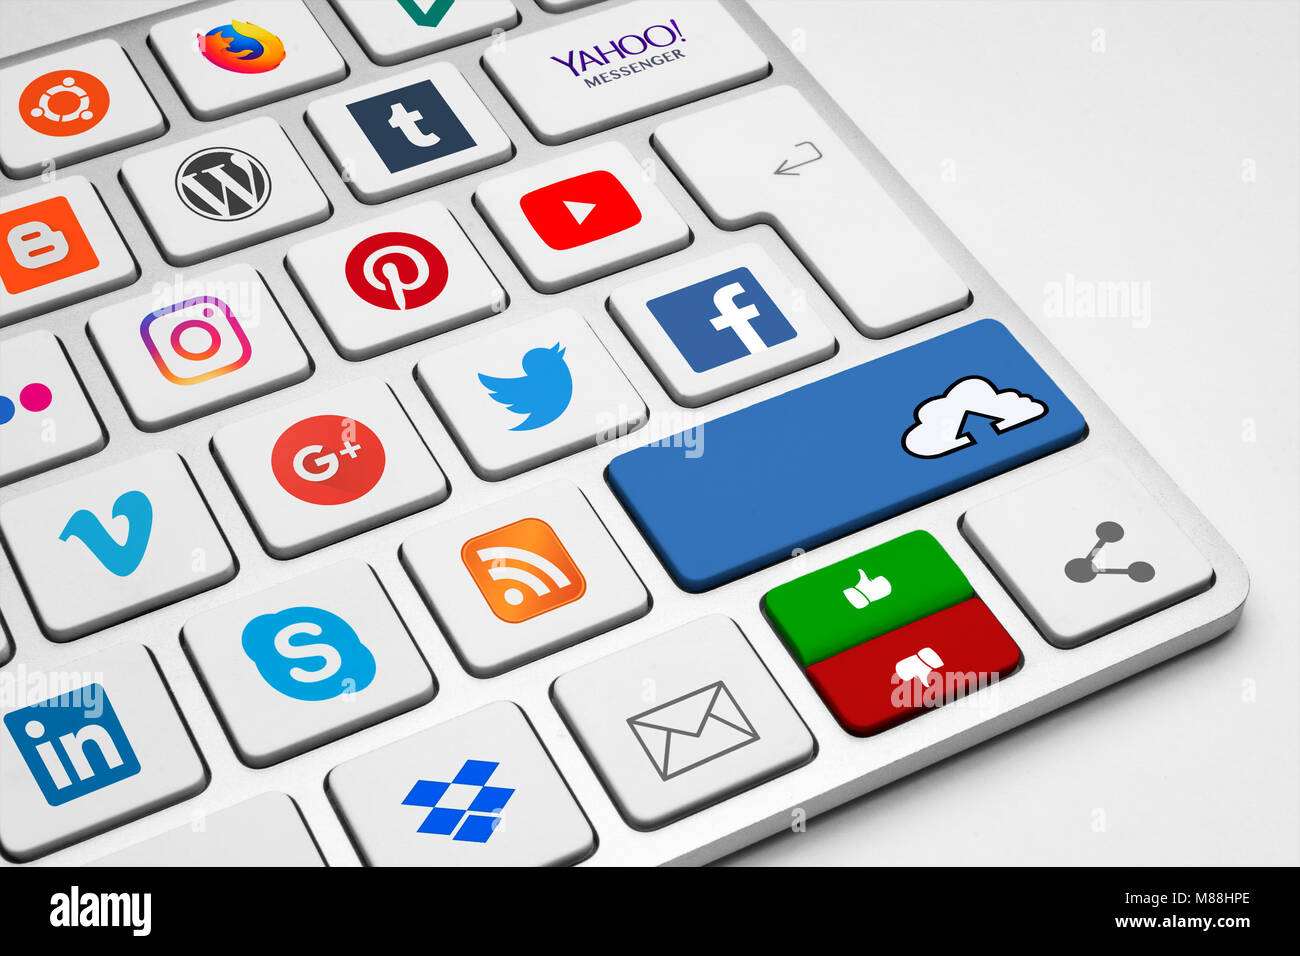 Conceptual keyboard with internet, communication and social media company logotypes illustrating the contemporary - Stock Image